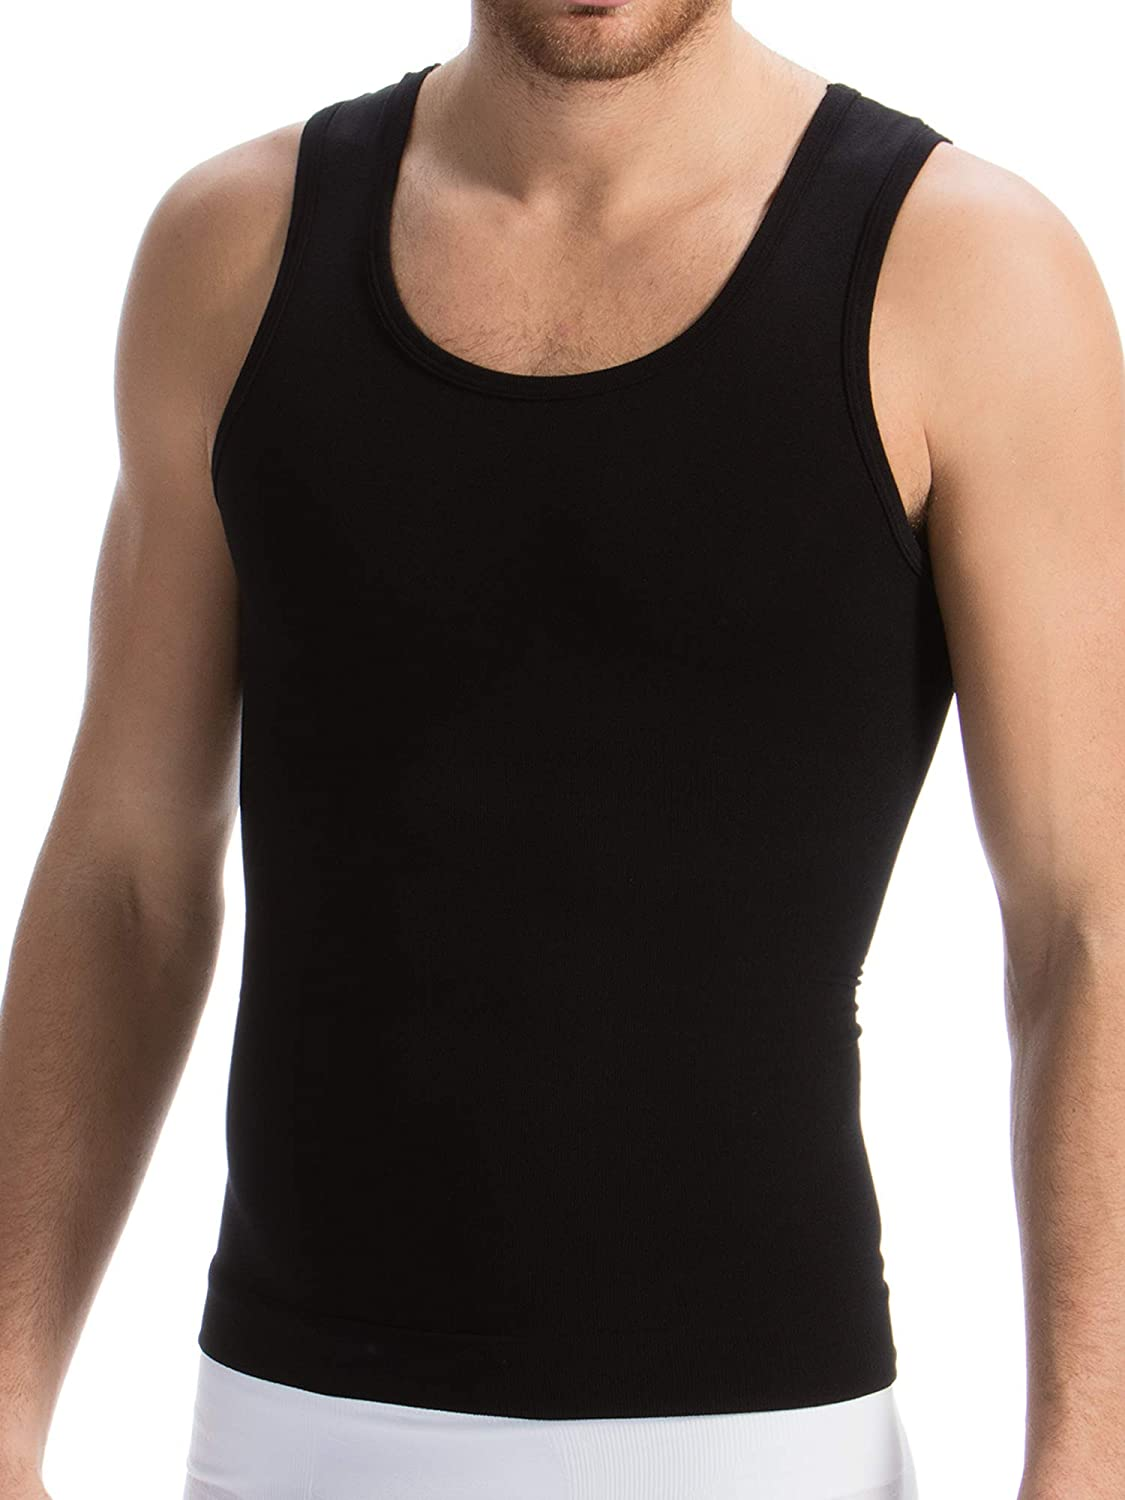 Farmacell Man 417B Men/'s Body Shaping Vest with Light and Refreshing Breeze Yarn